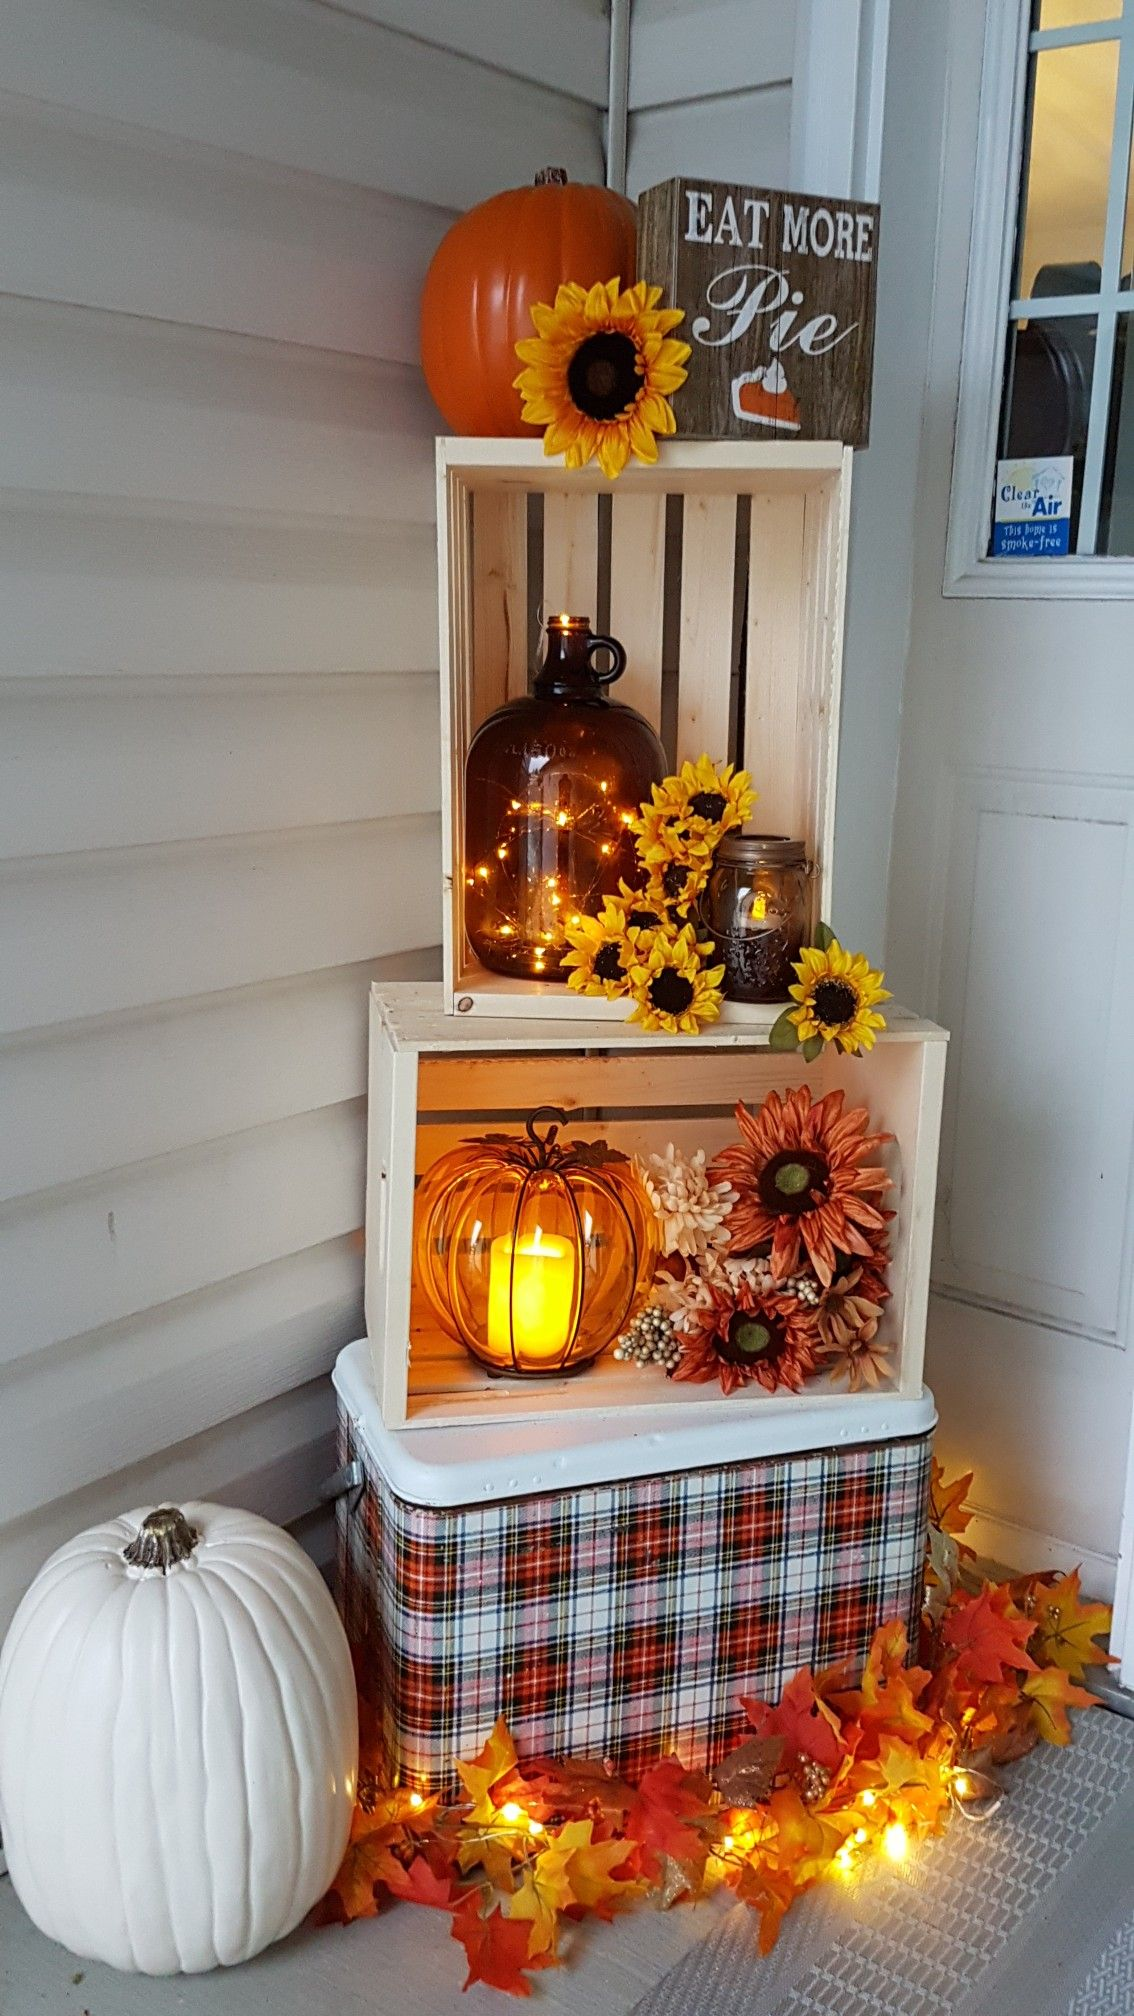 Autumn Entry Display Crates Fall Leaves Pumpkin Plaid